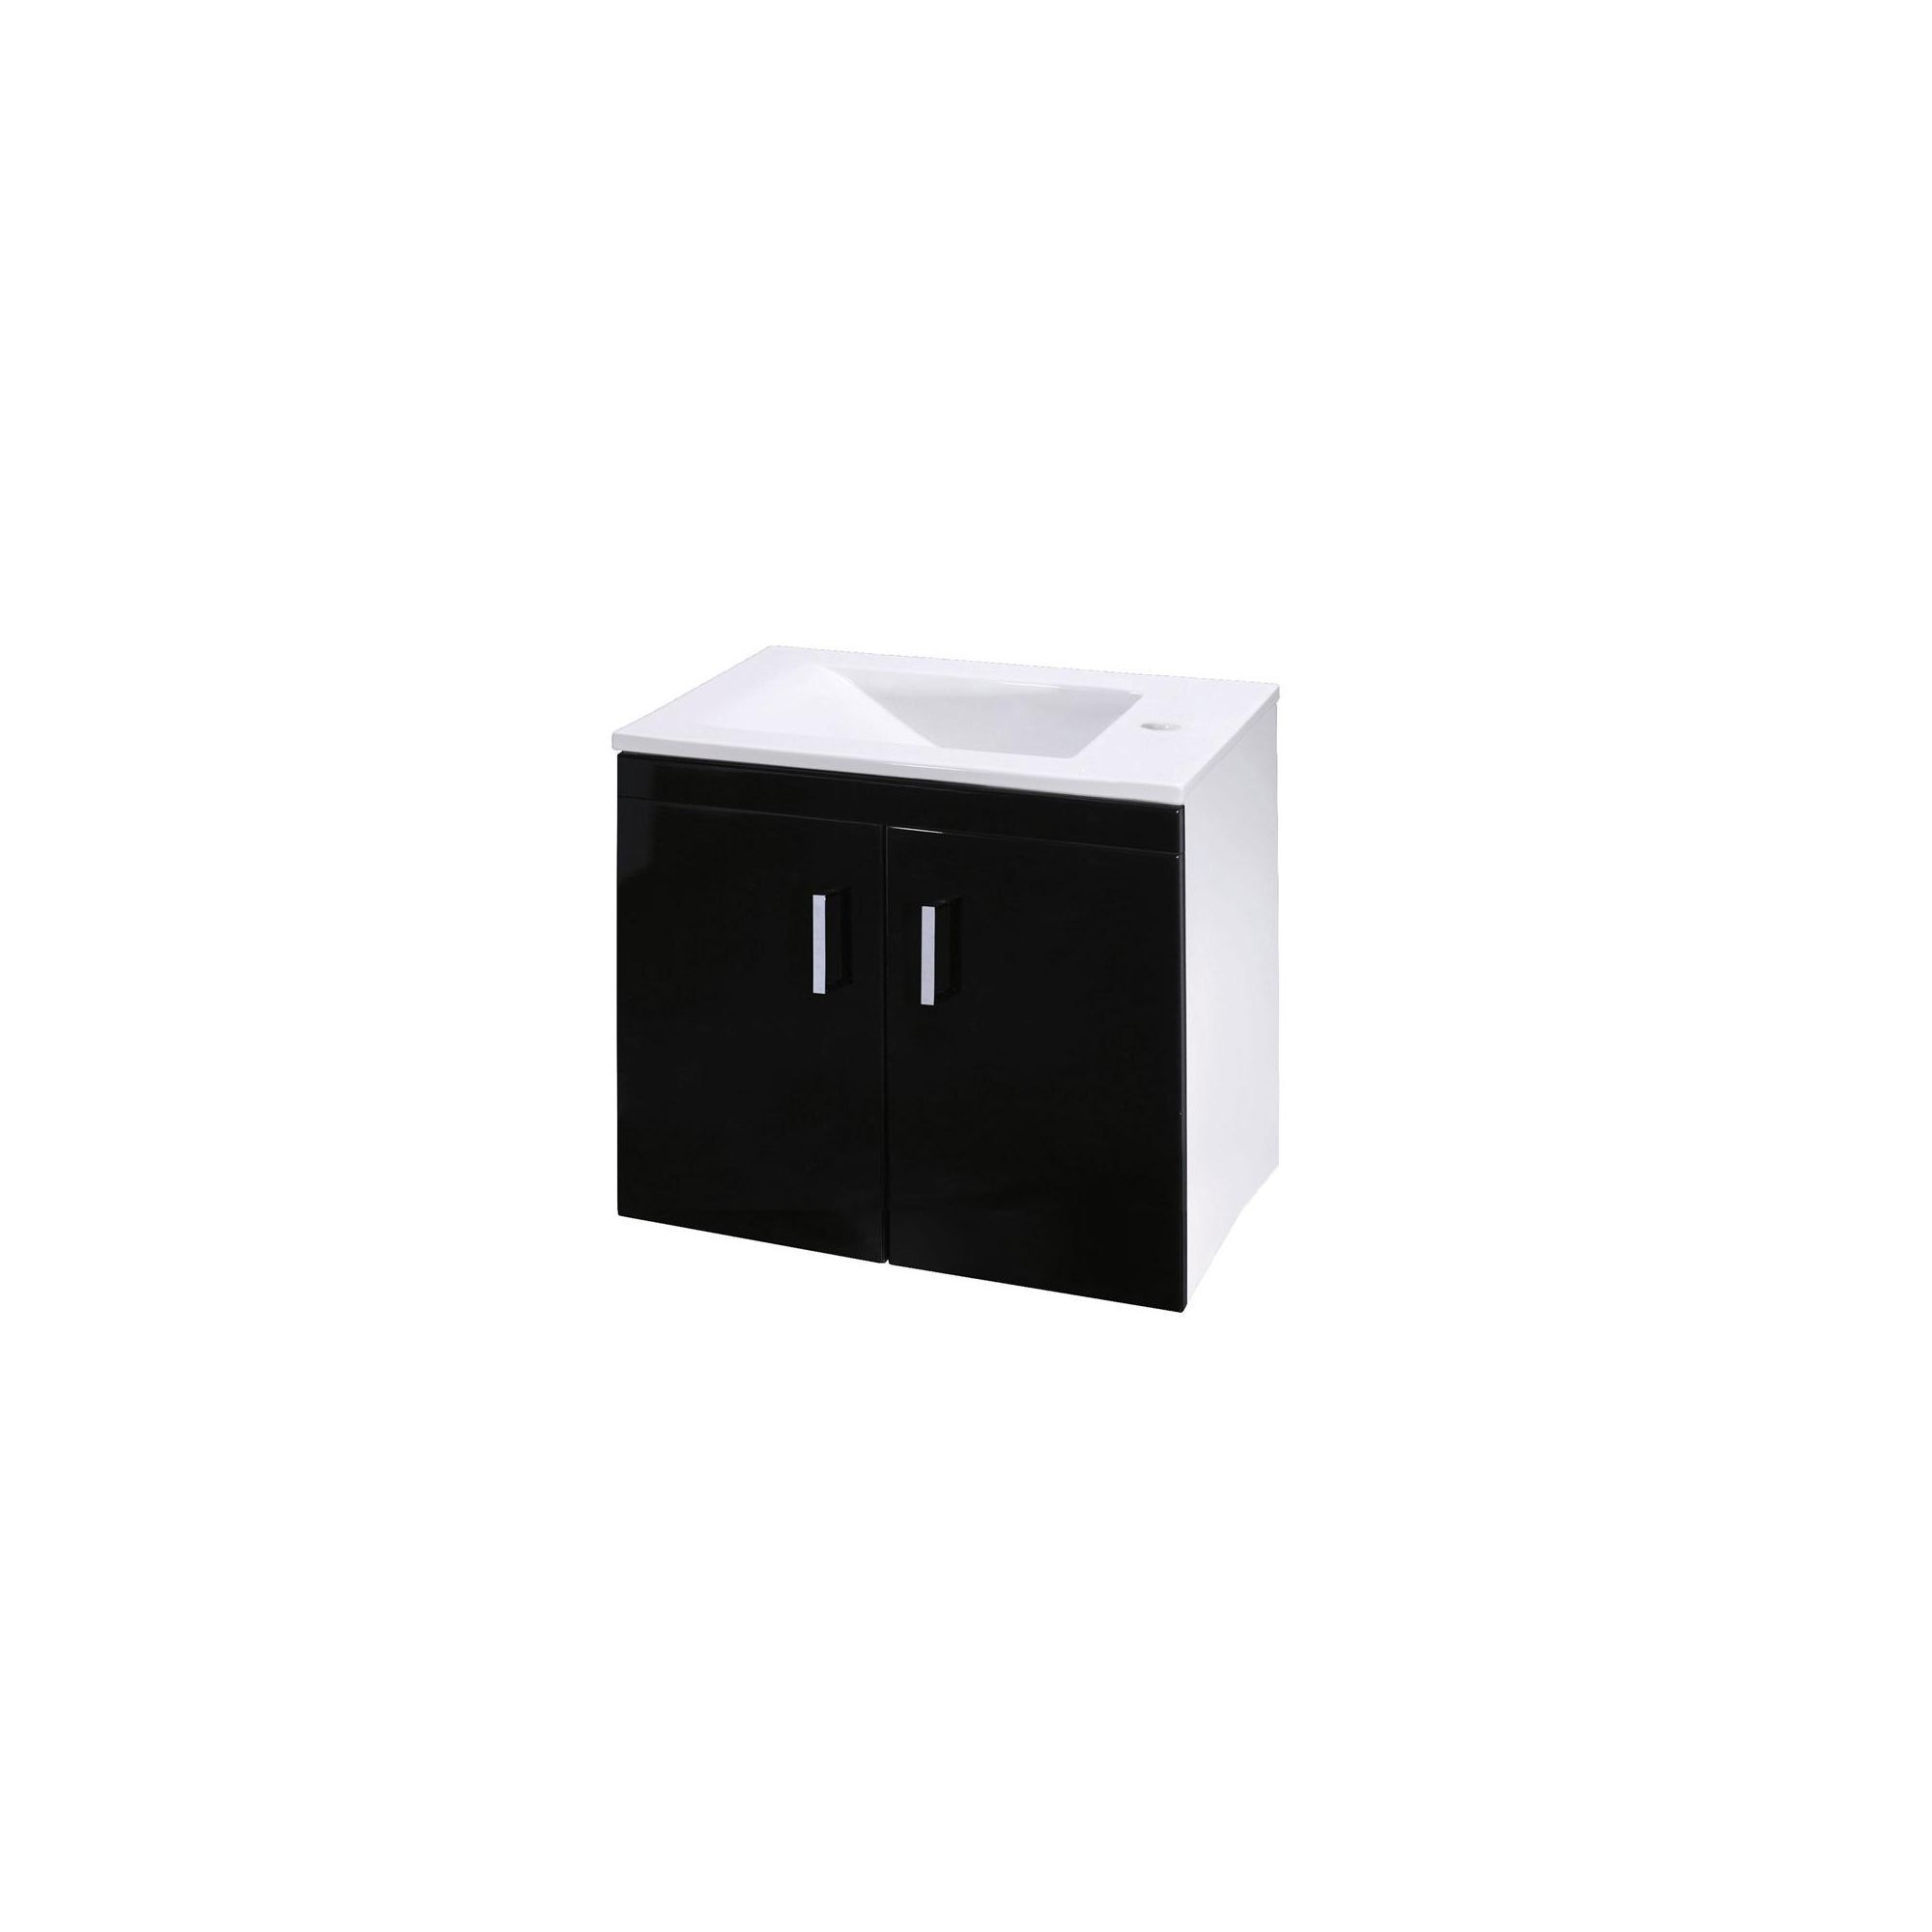 Premier Liberty Wall Mounted 2 Door Unit High Gloss Black